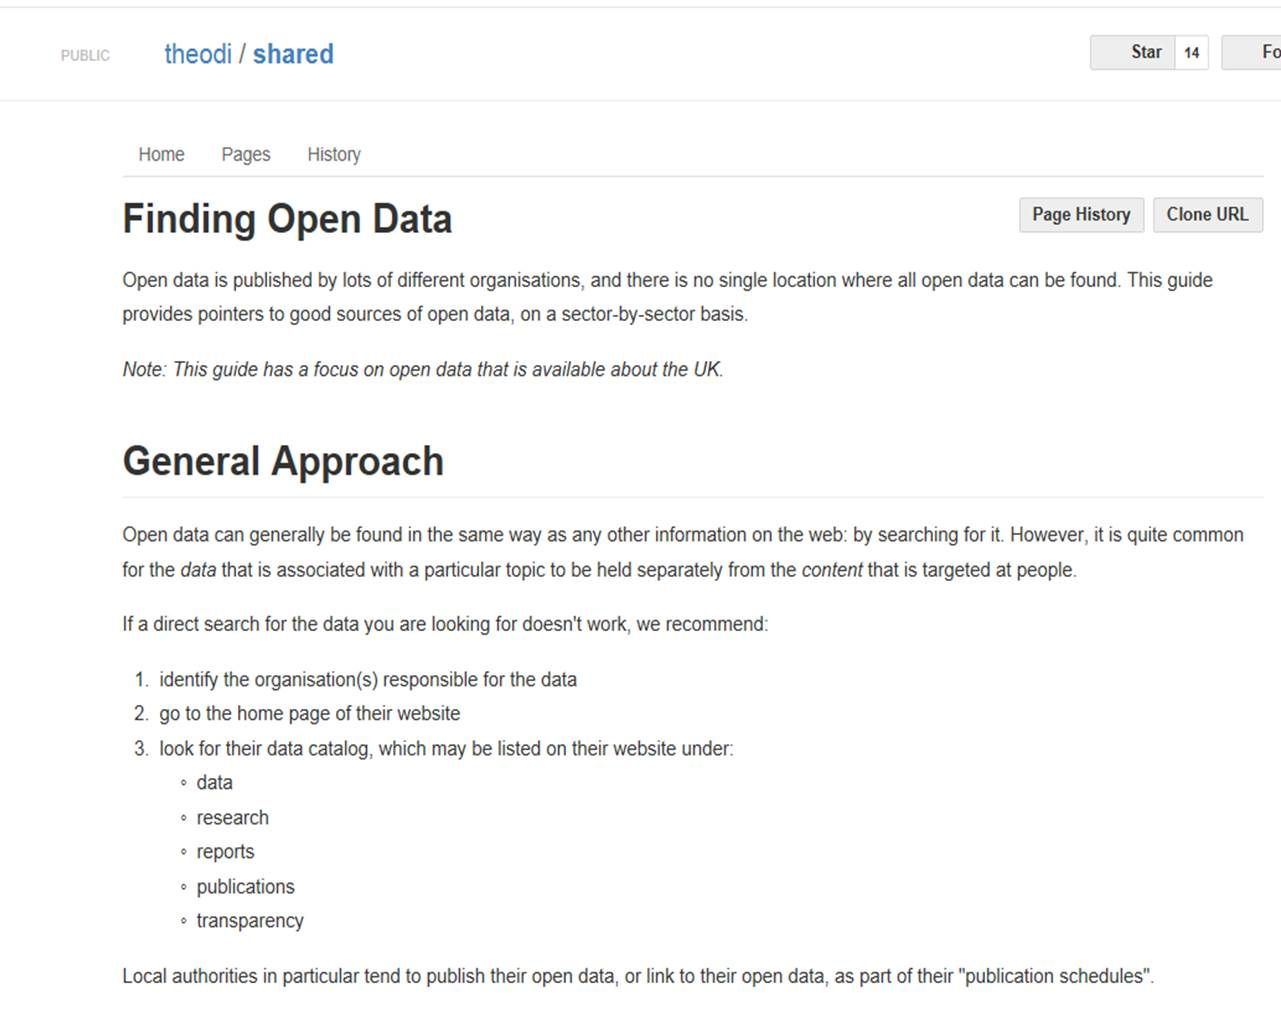 The ODI offer a number of useful resources, blog posts, events that open up